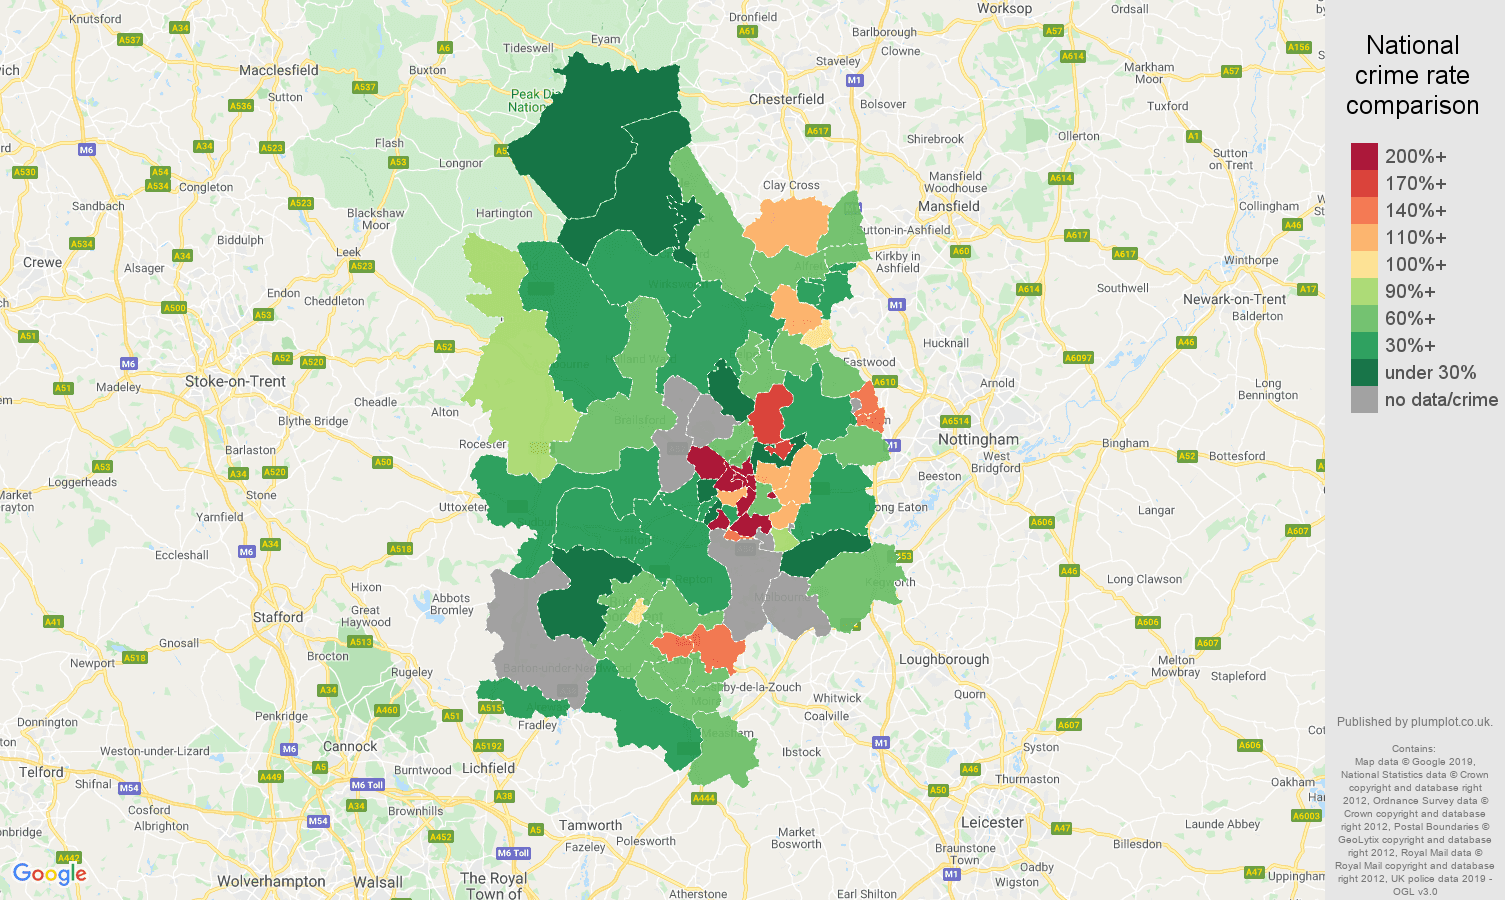 Derby possession of weapons crime rate comparison map